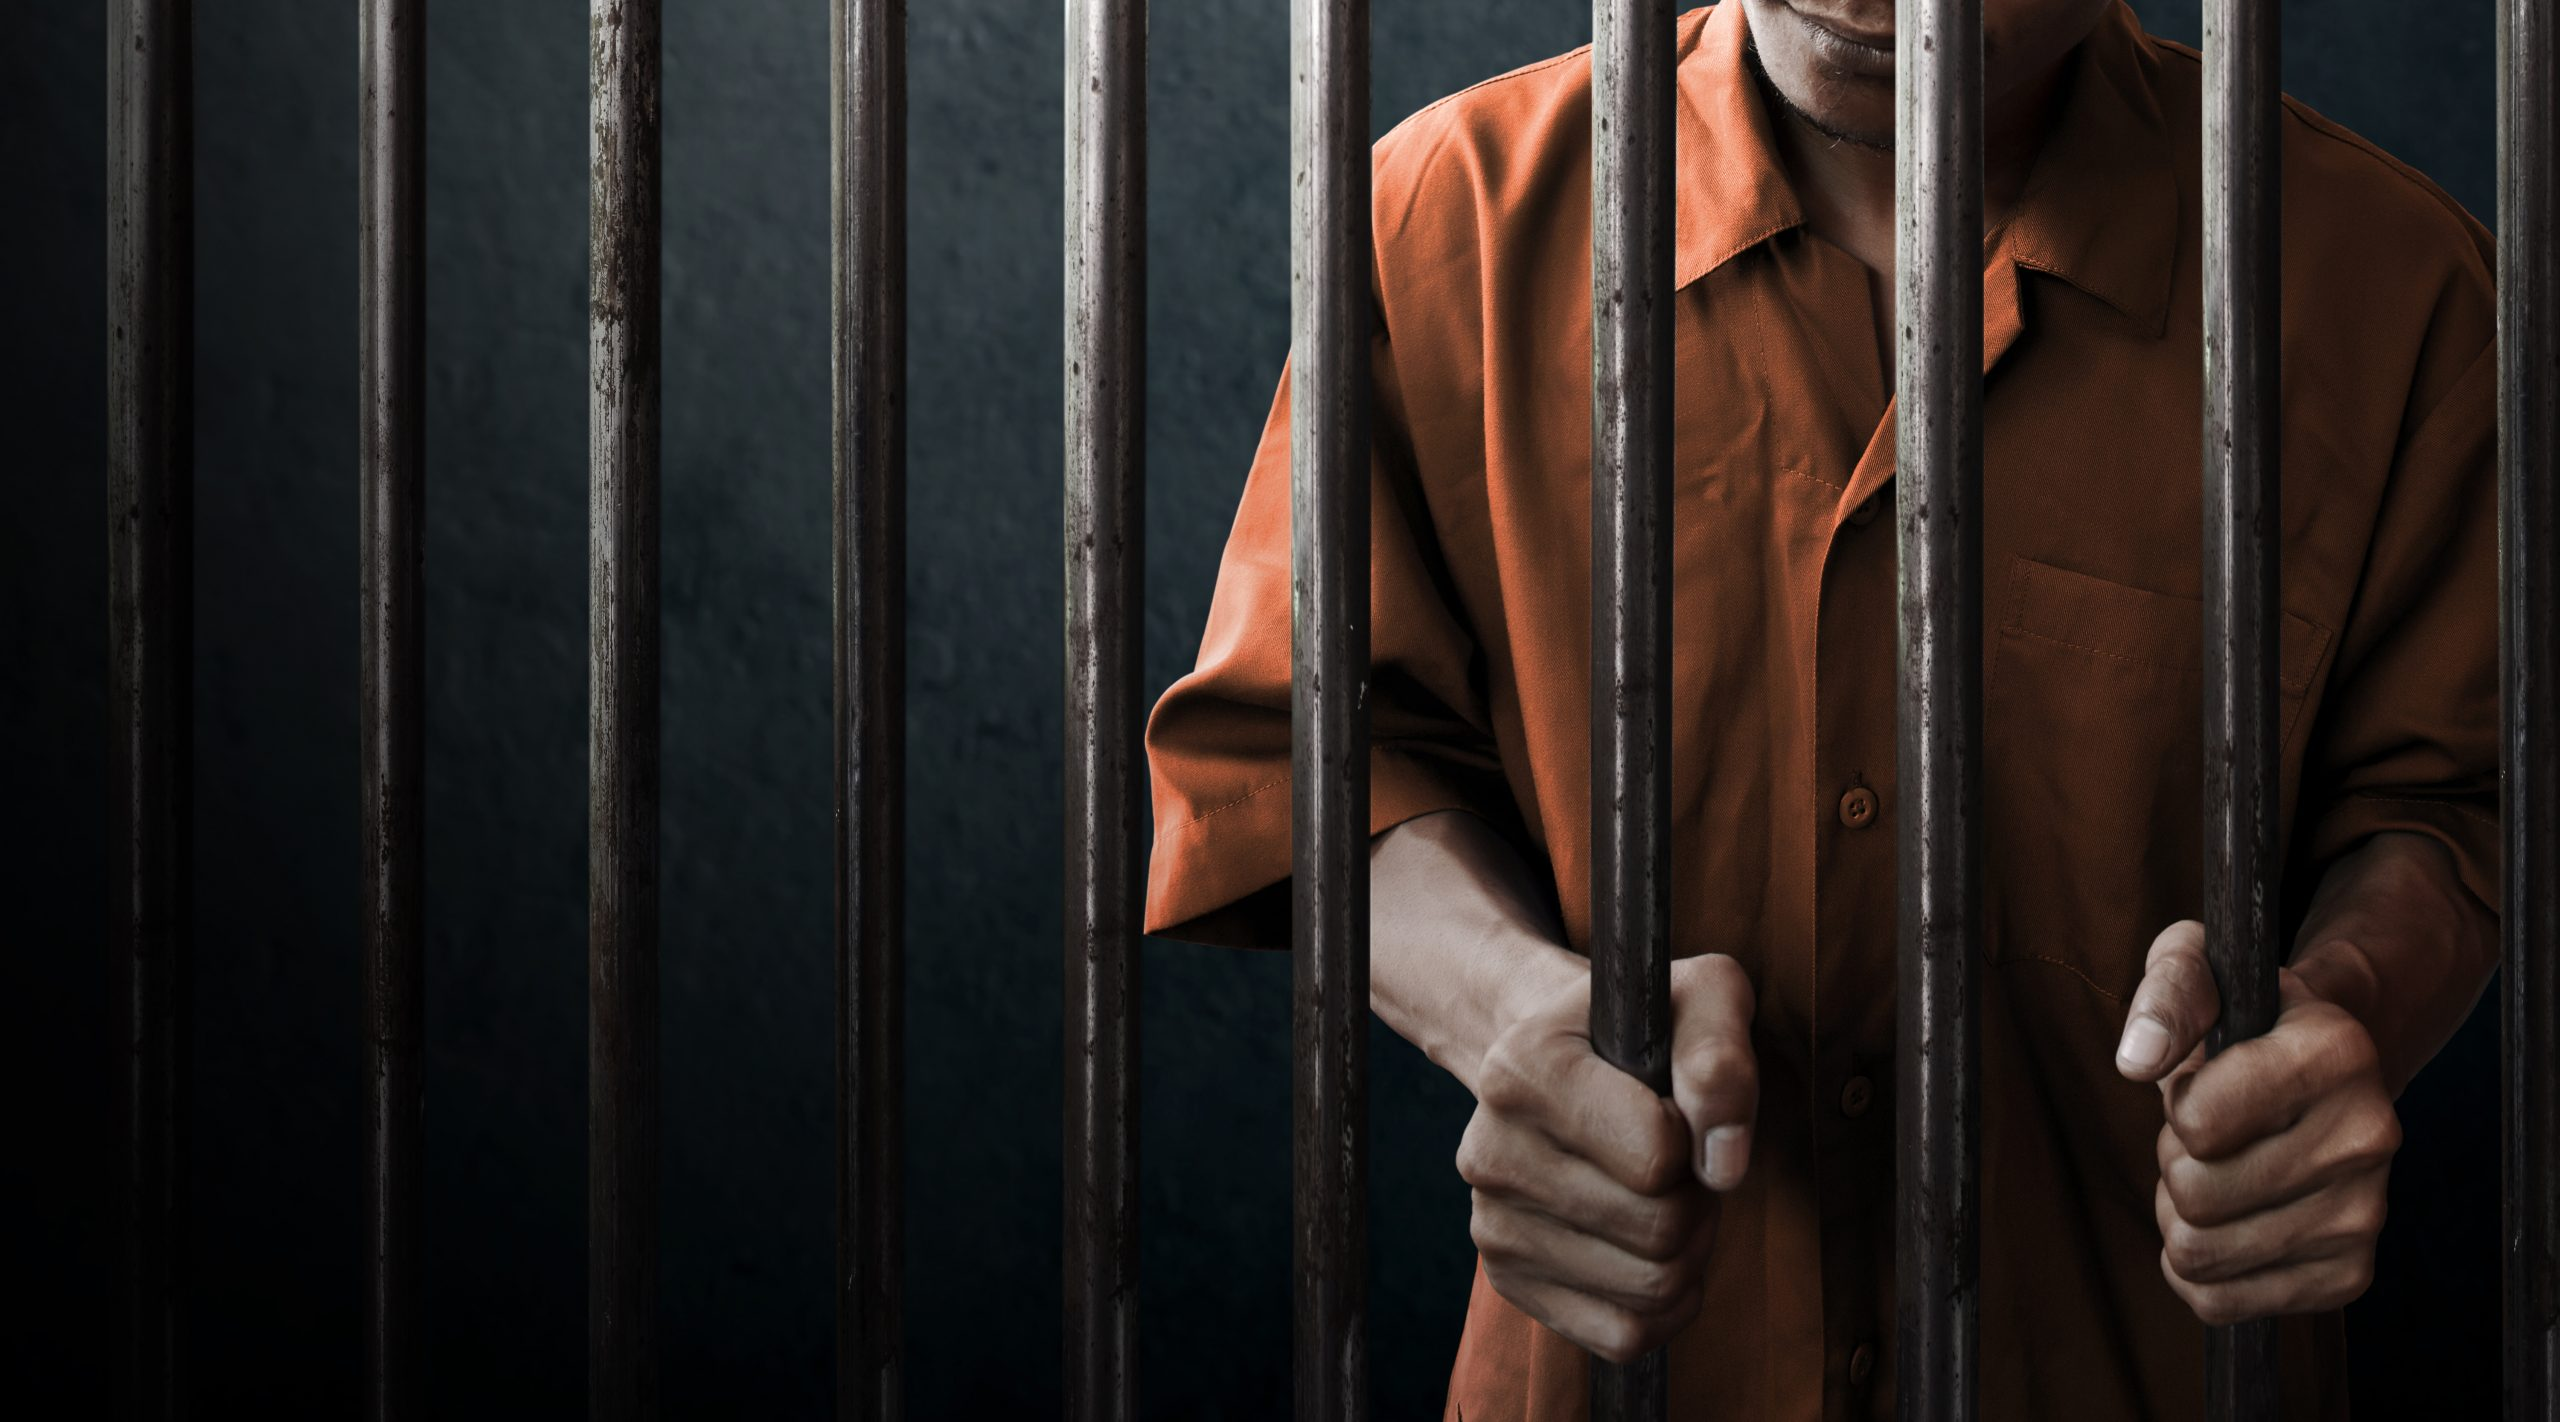 Risk of contracting disease from Covid positive prisoners worries workers at Ohio's ODRC institutions